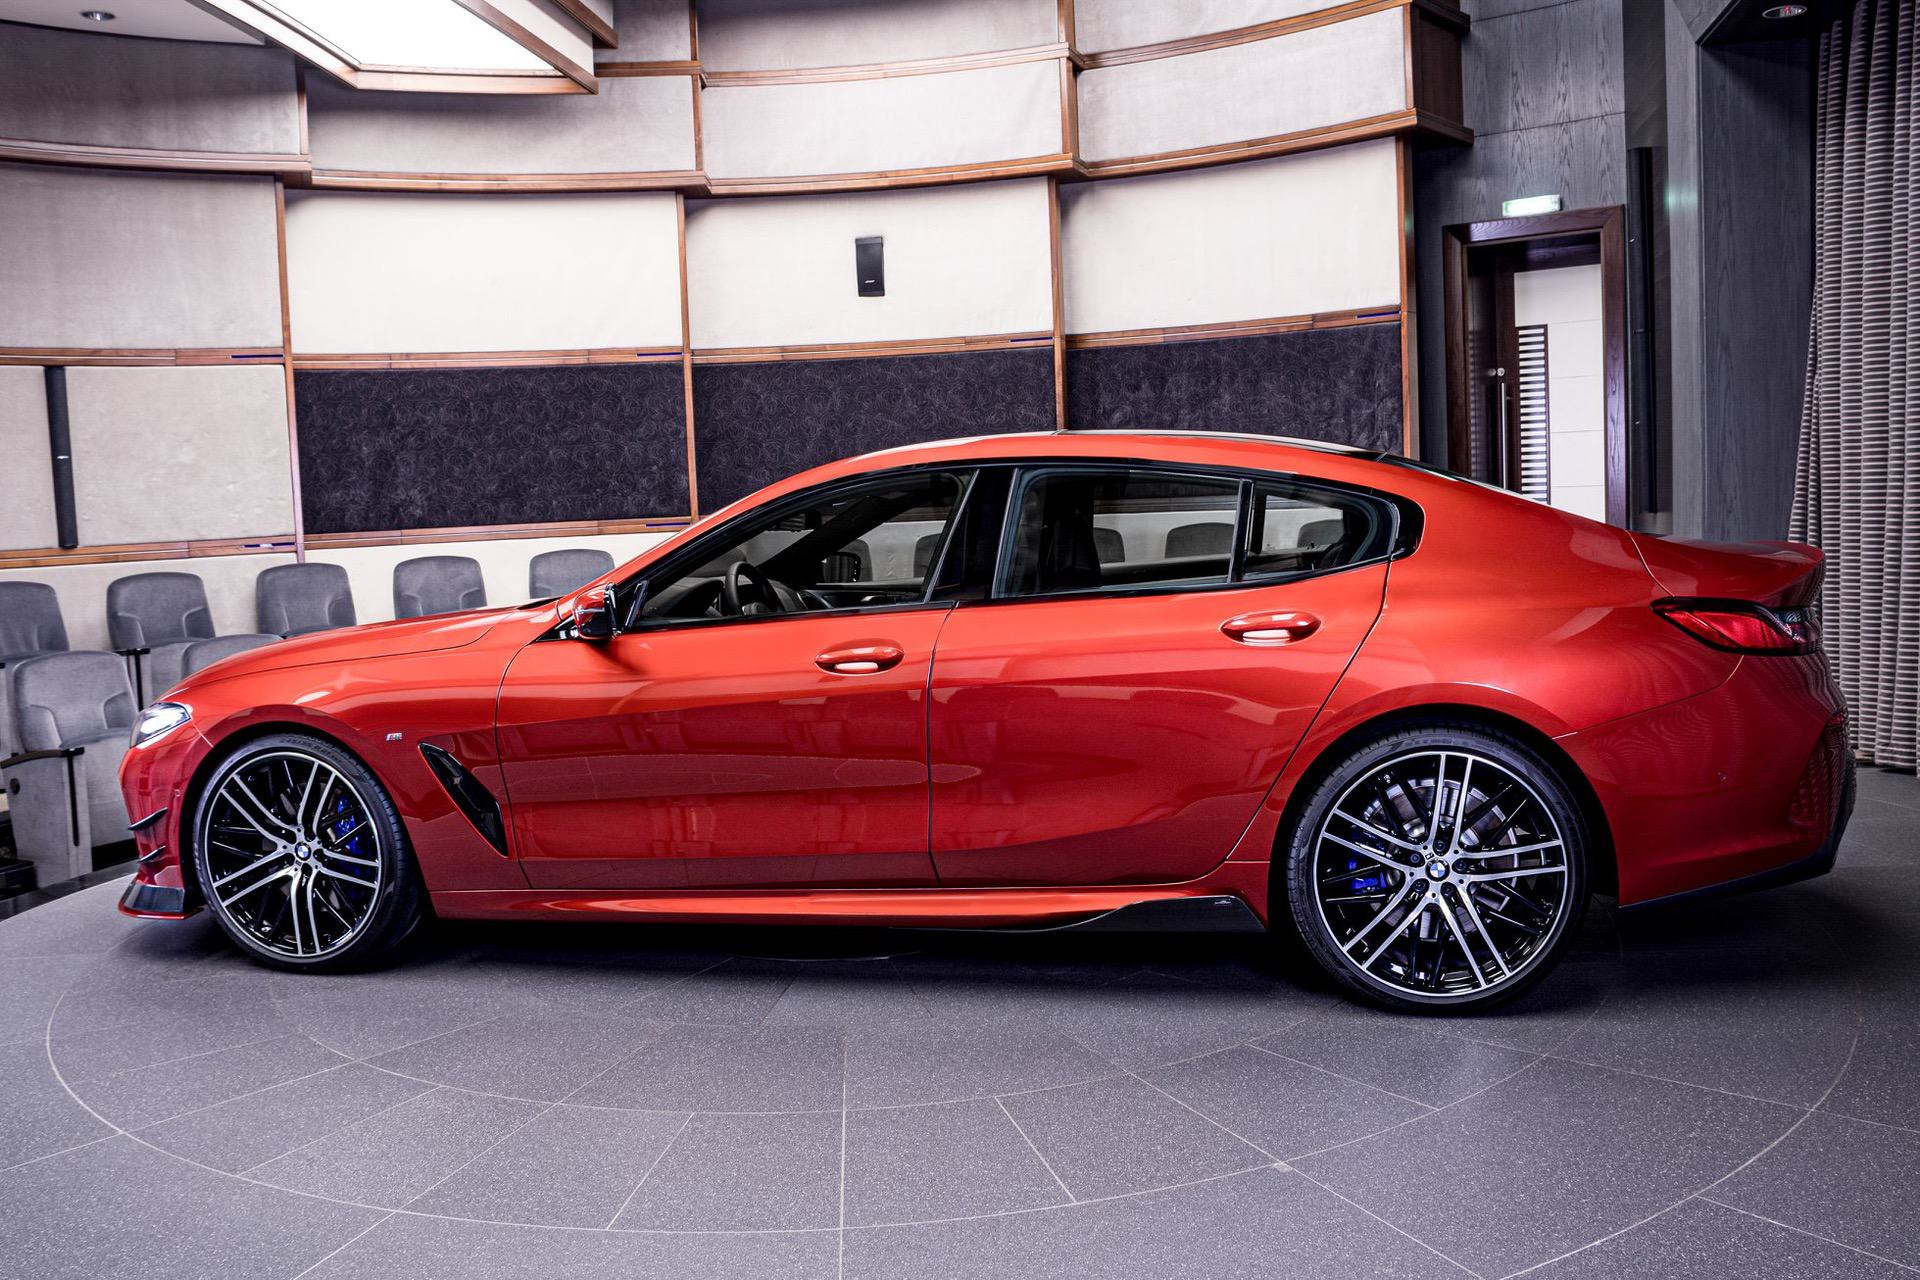 2020 Bmw 840i Gran Coupe Styled With Ac Schnitzer Parts Upcoming Cars Library Up To Date